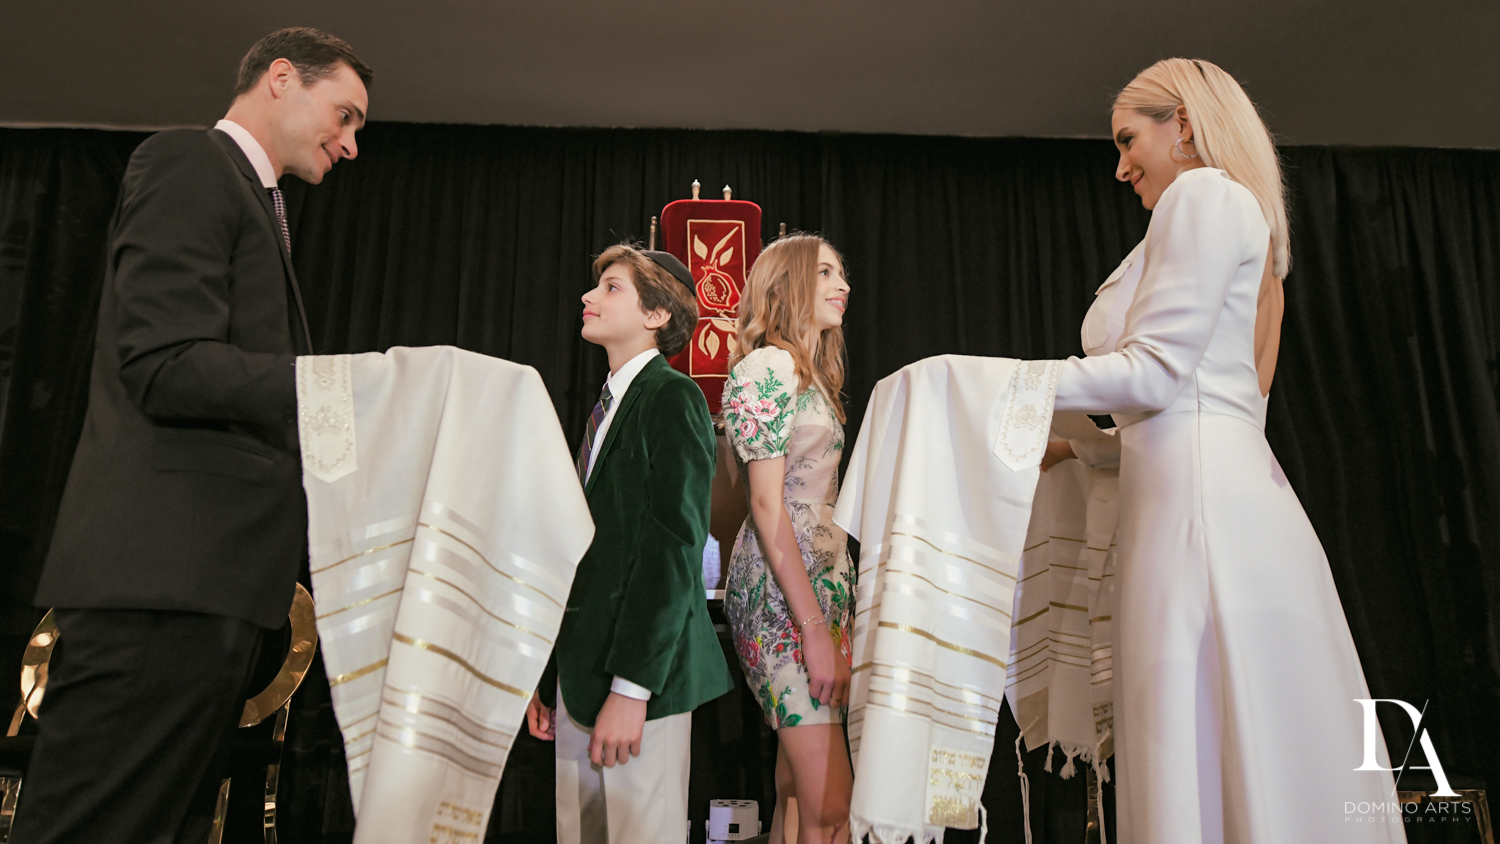 Double ceremony at Designer invitations at Stylish Architectural B'Nai Mitzvah at the NEW JW Marriott Miami Turnberry Resort & Spa by Domino Arts Photography